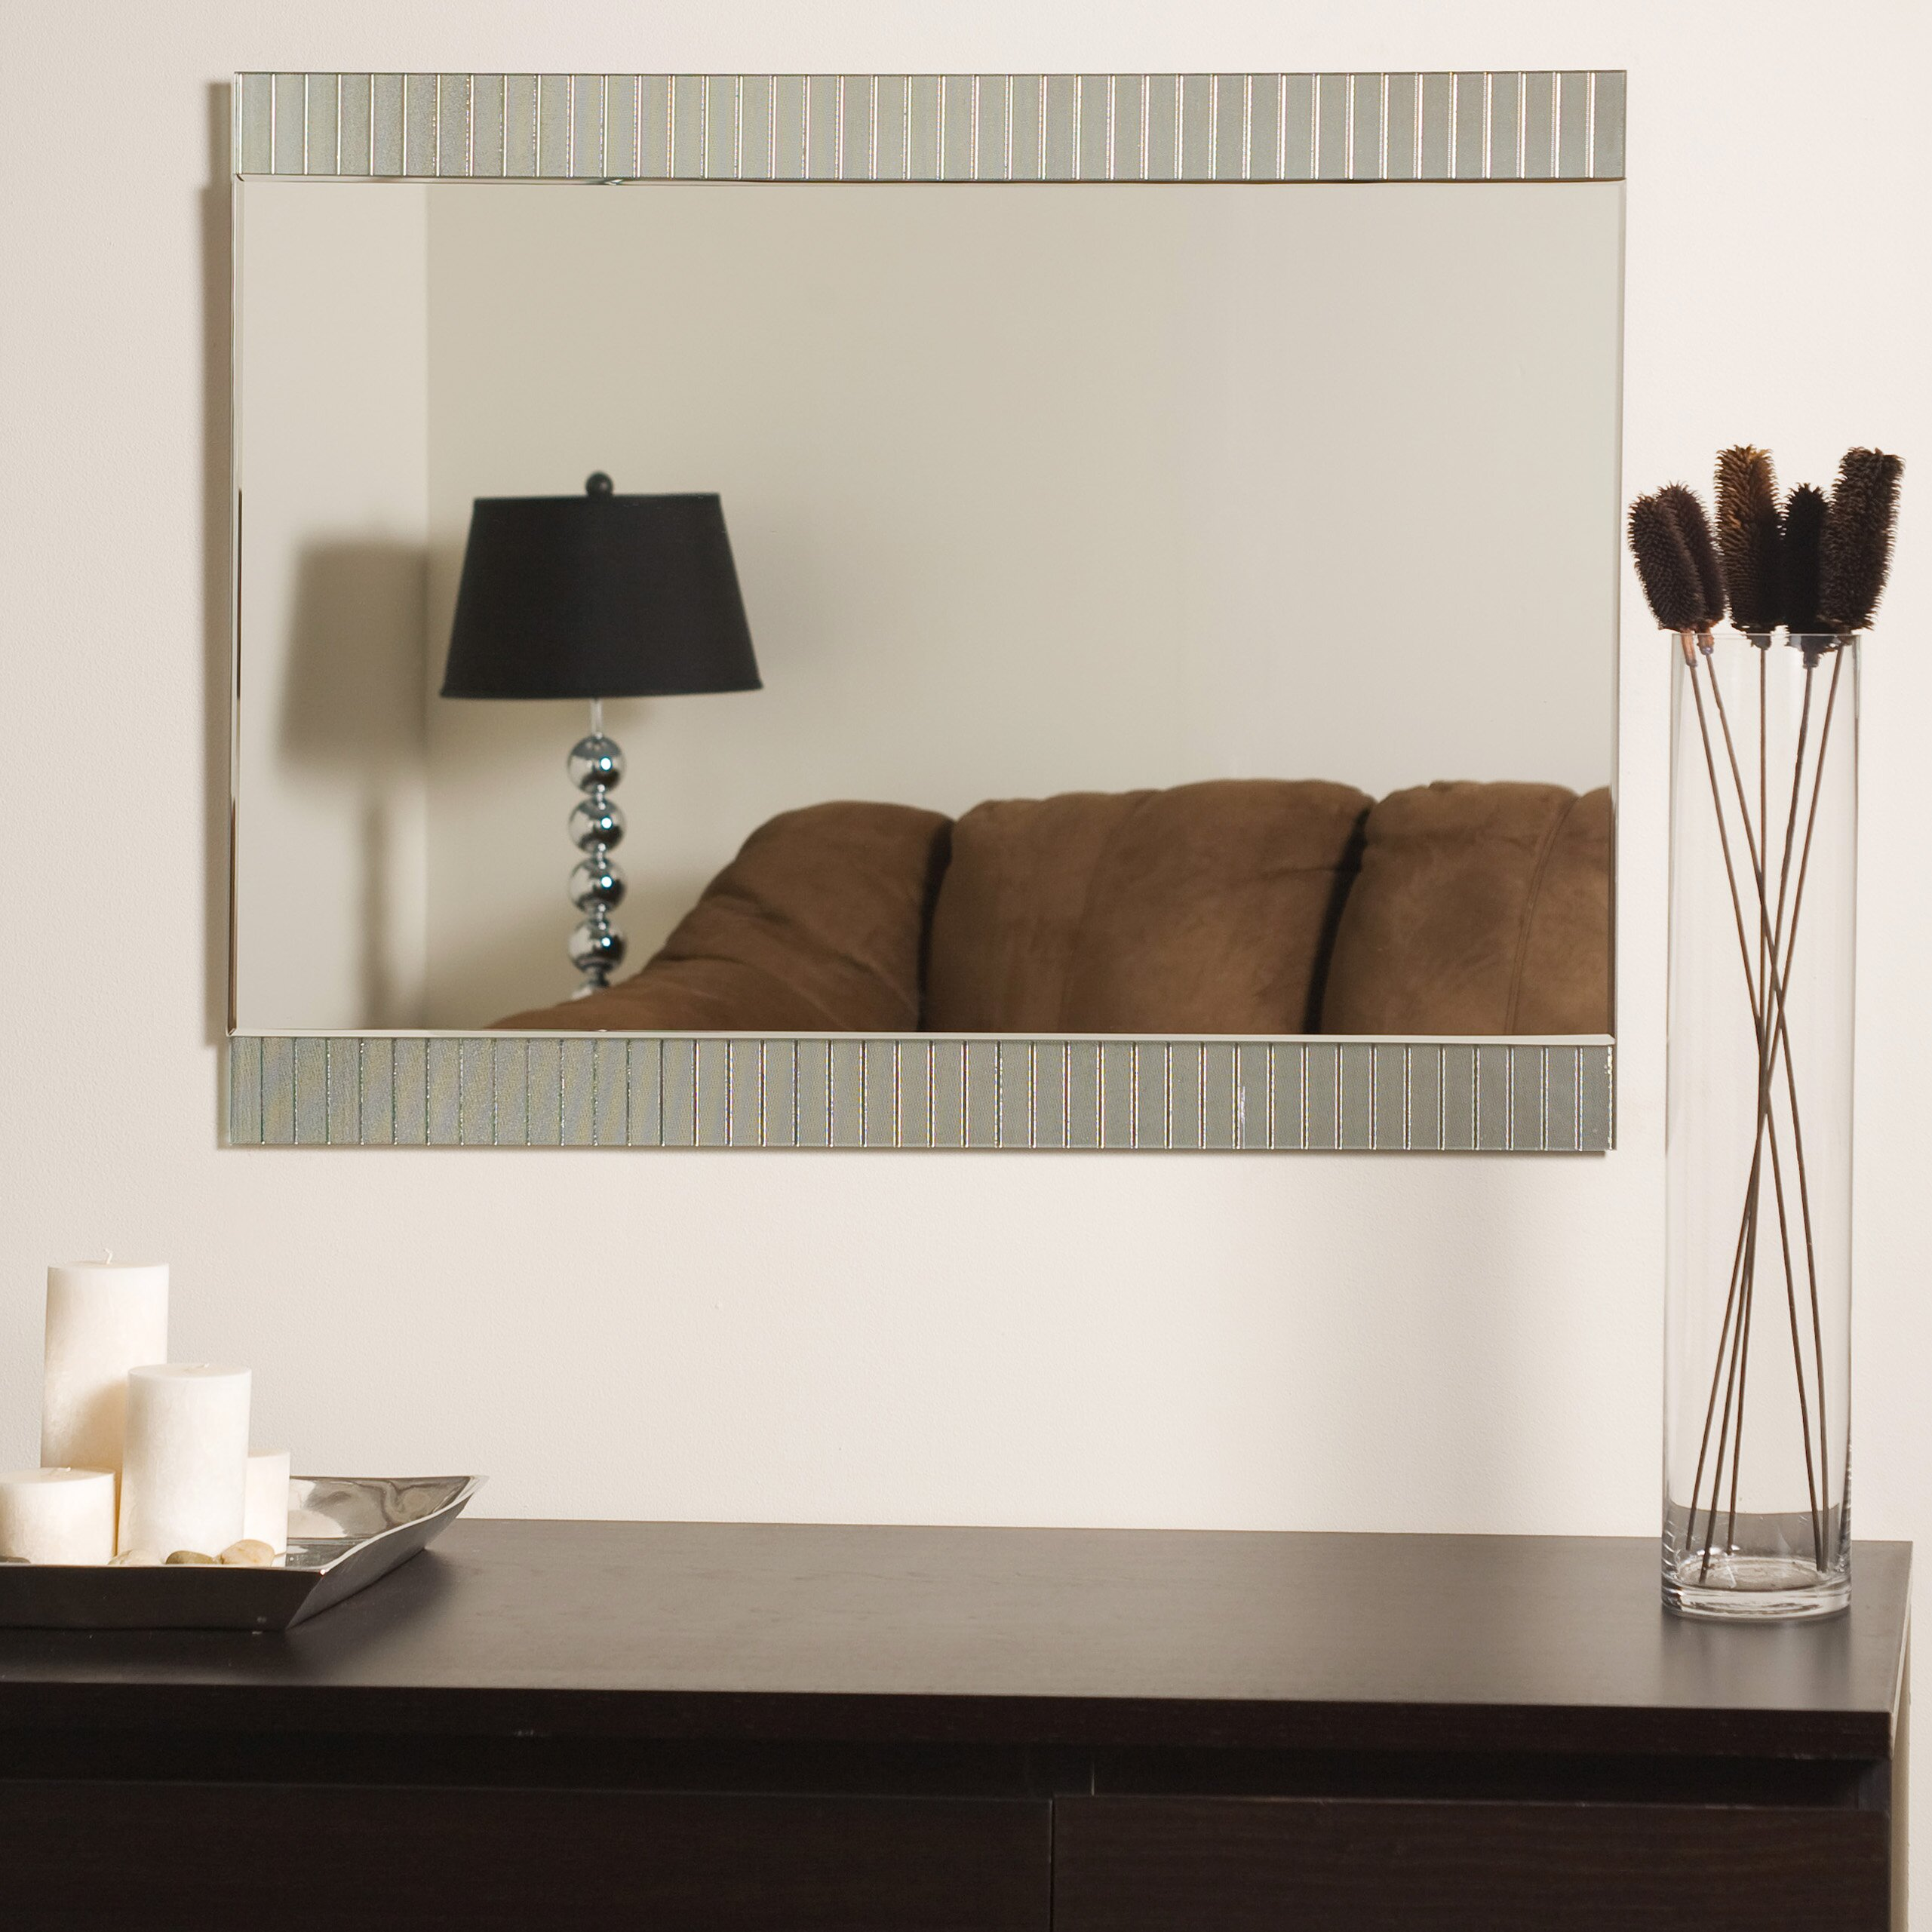 Decor wonderland sam frameless wall mirror reviews wayfair for Frameless wall mirror